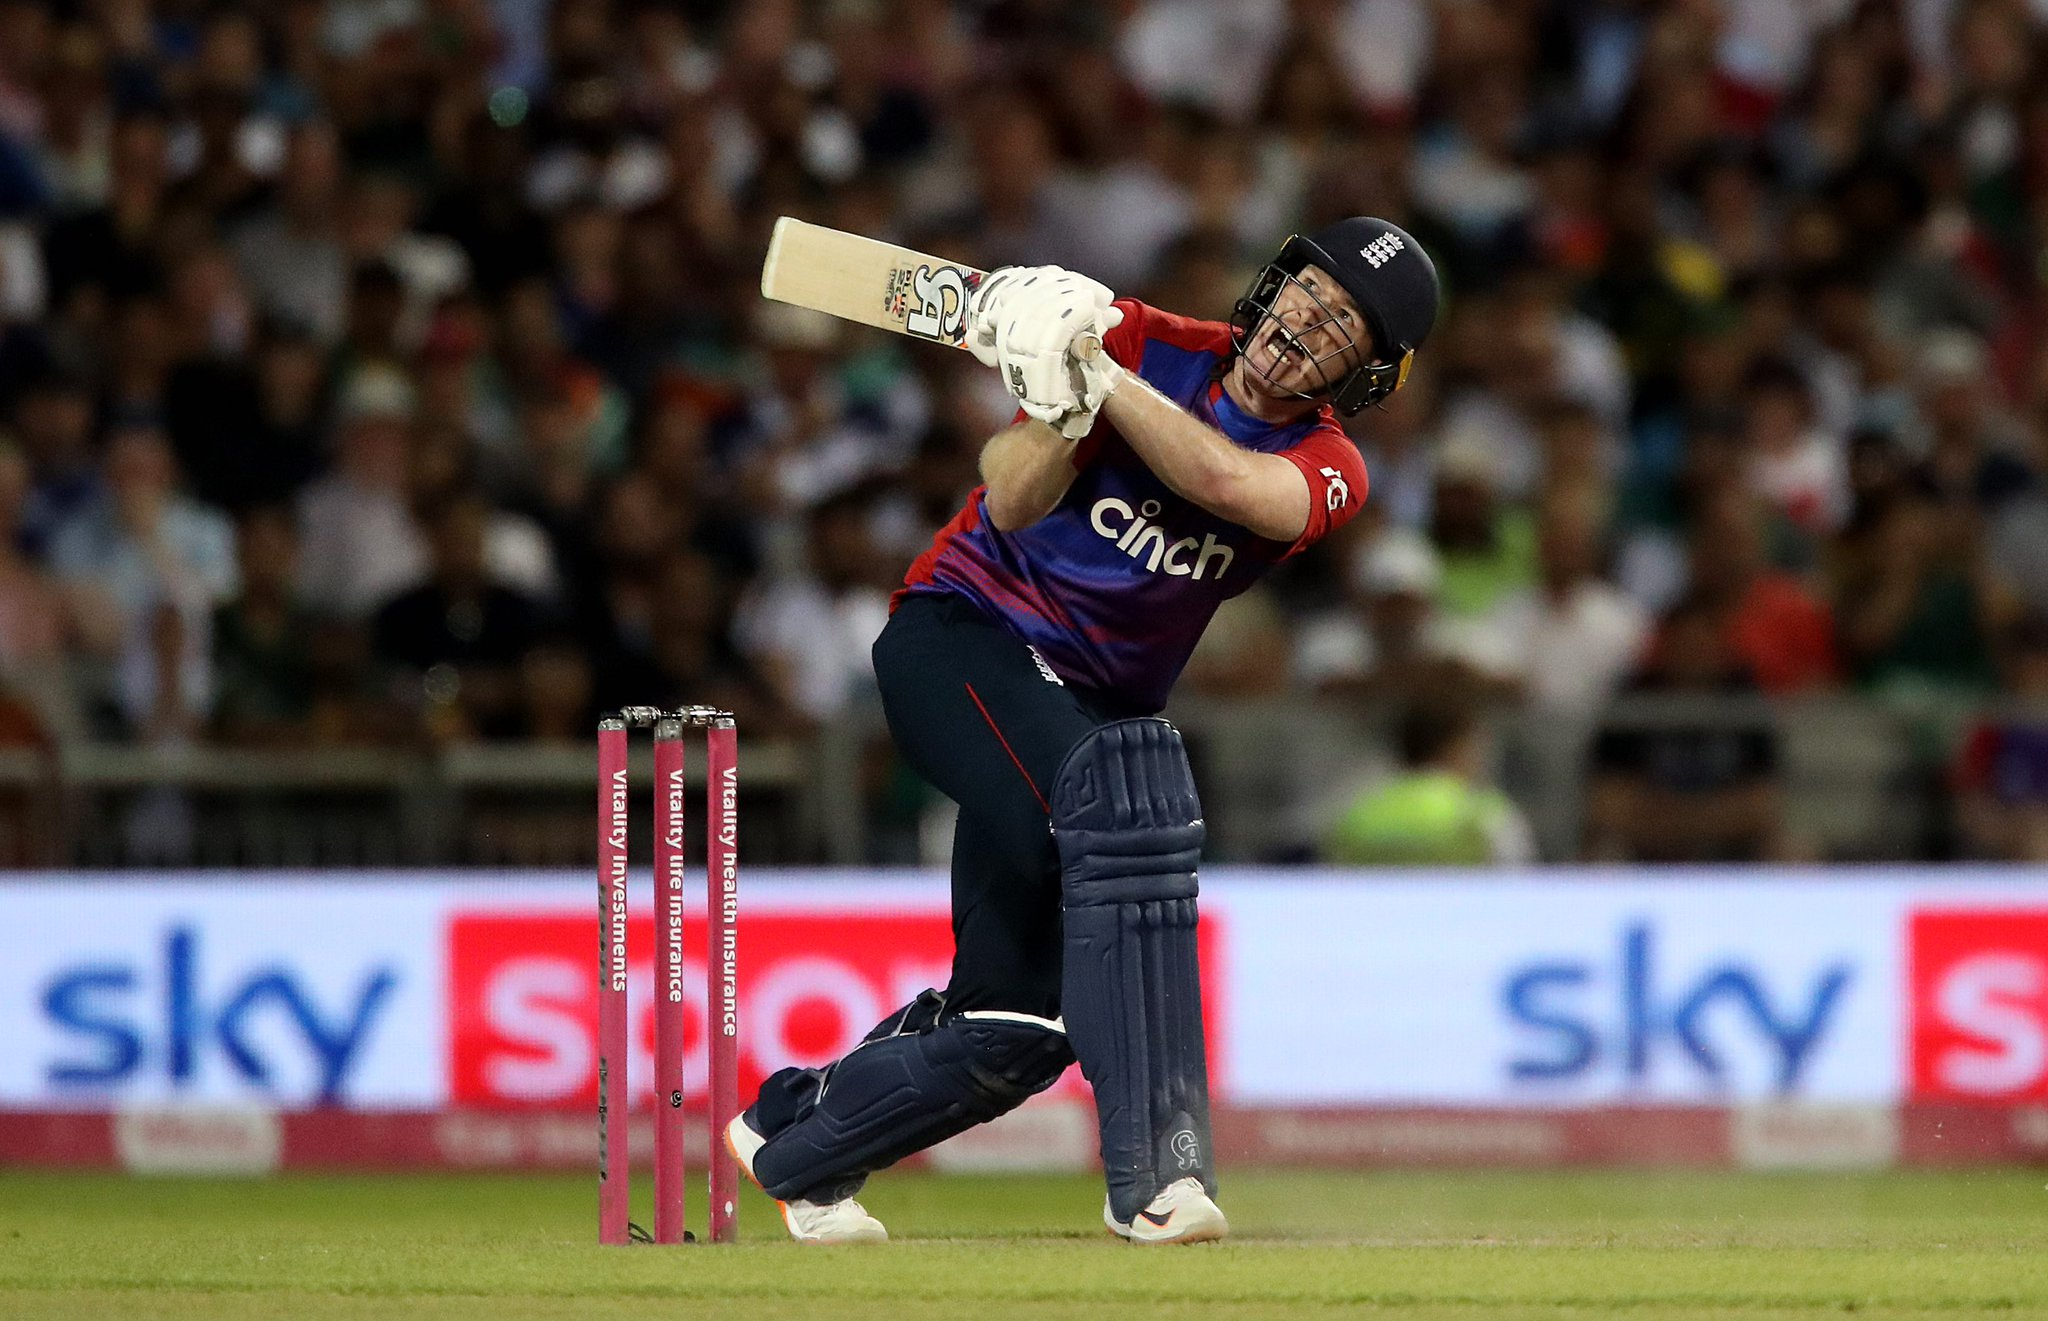 England edge Pakistan by 3 wickets in thrilling 3rd T20I to take the series 2-1